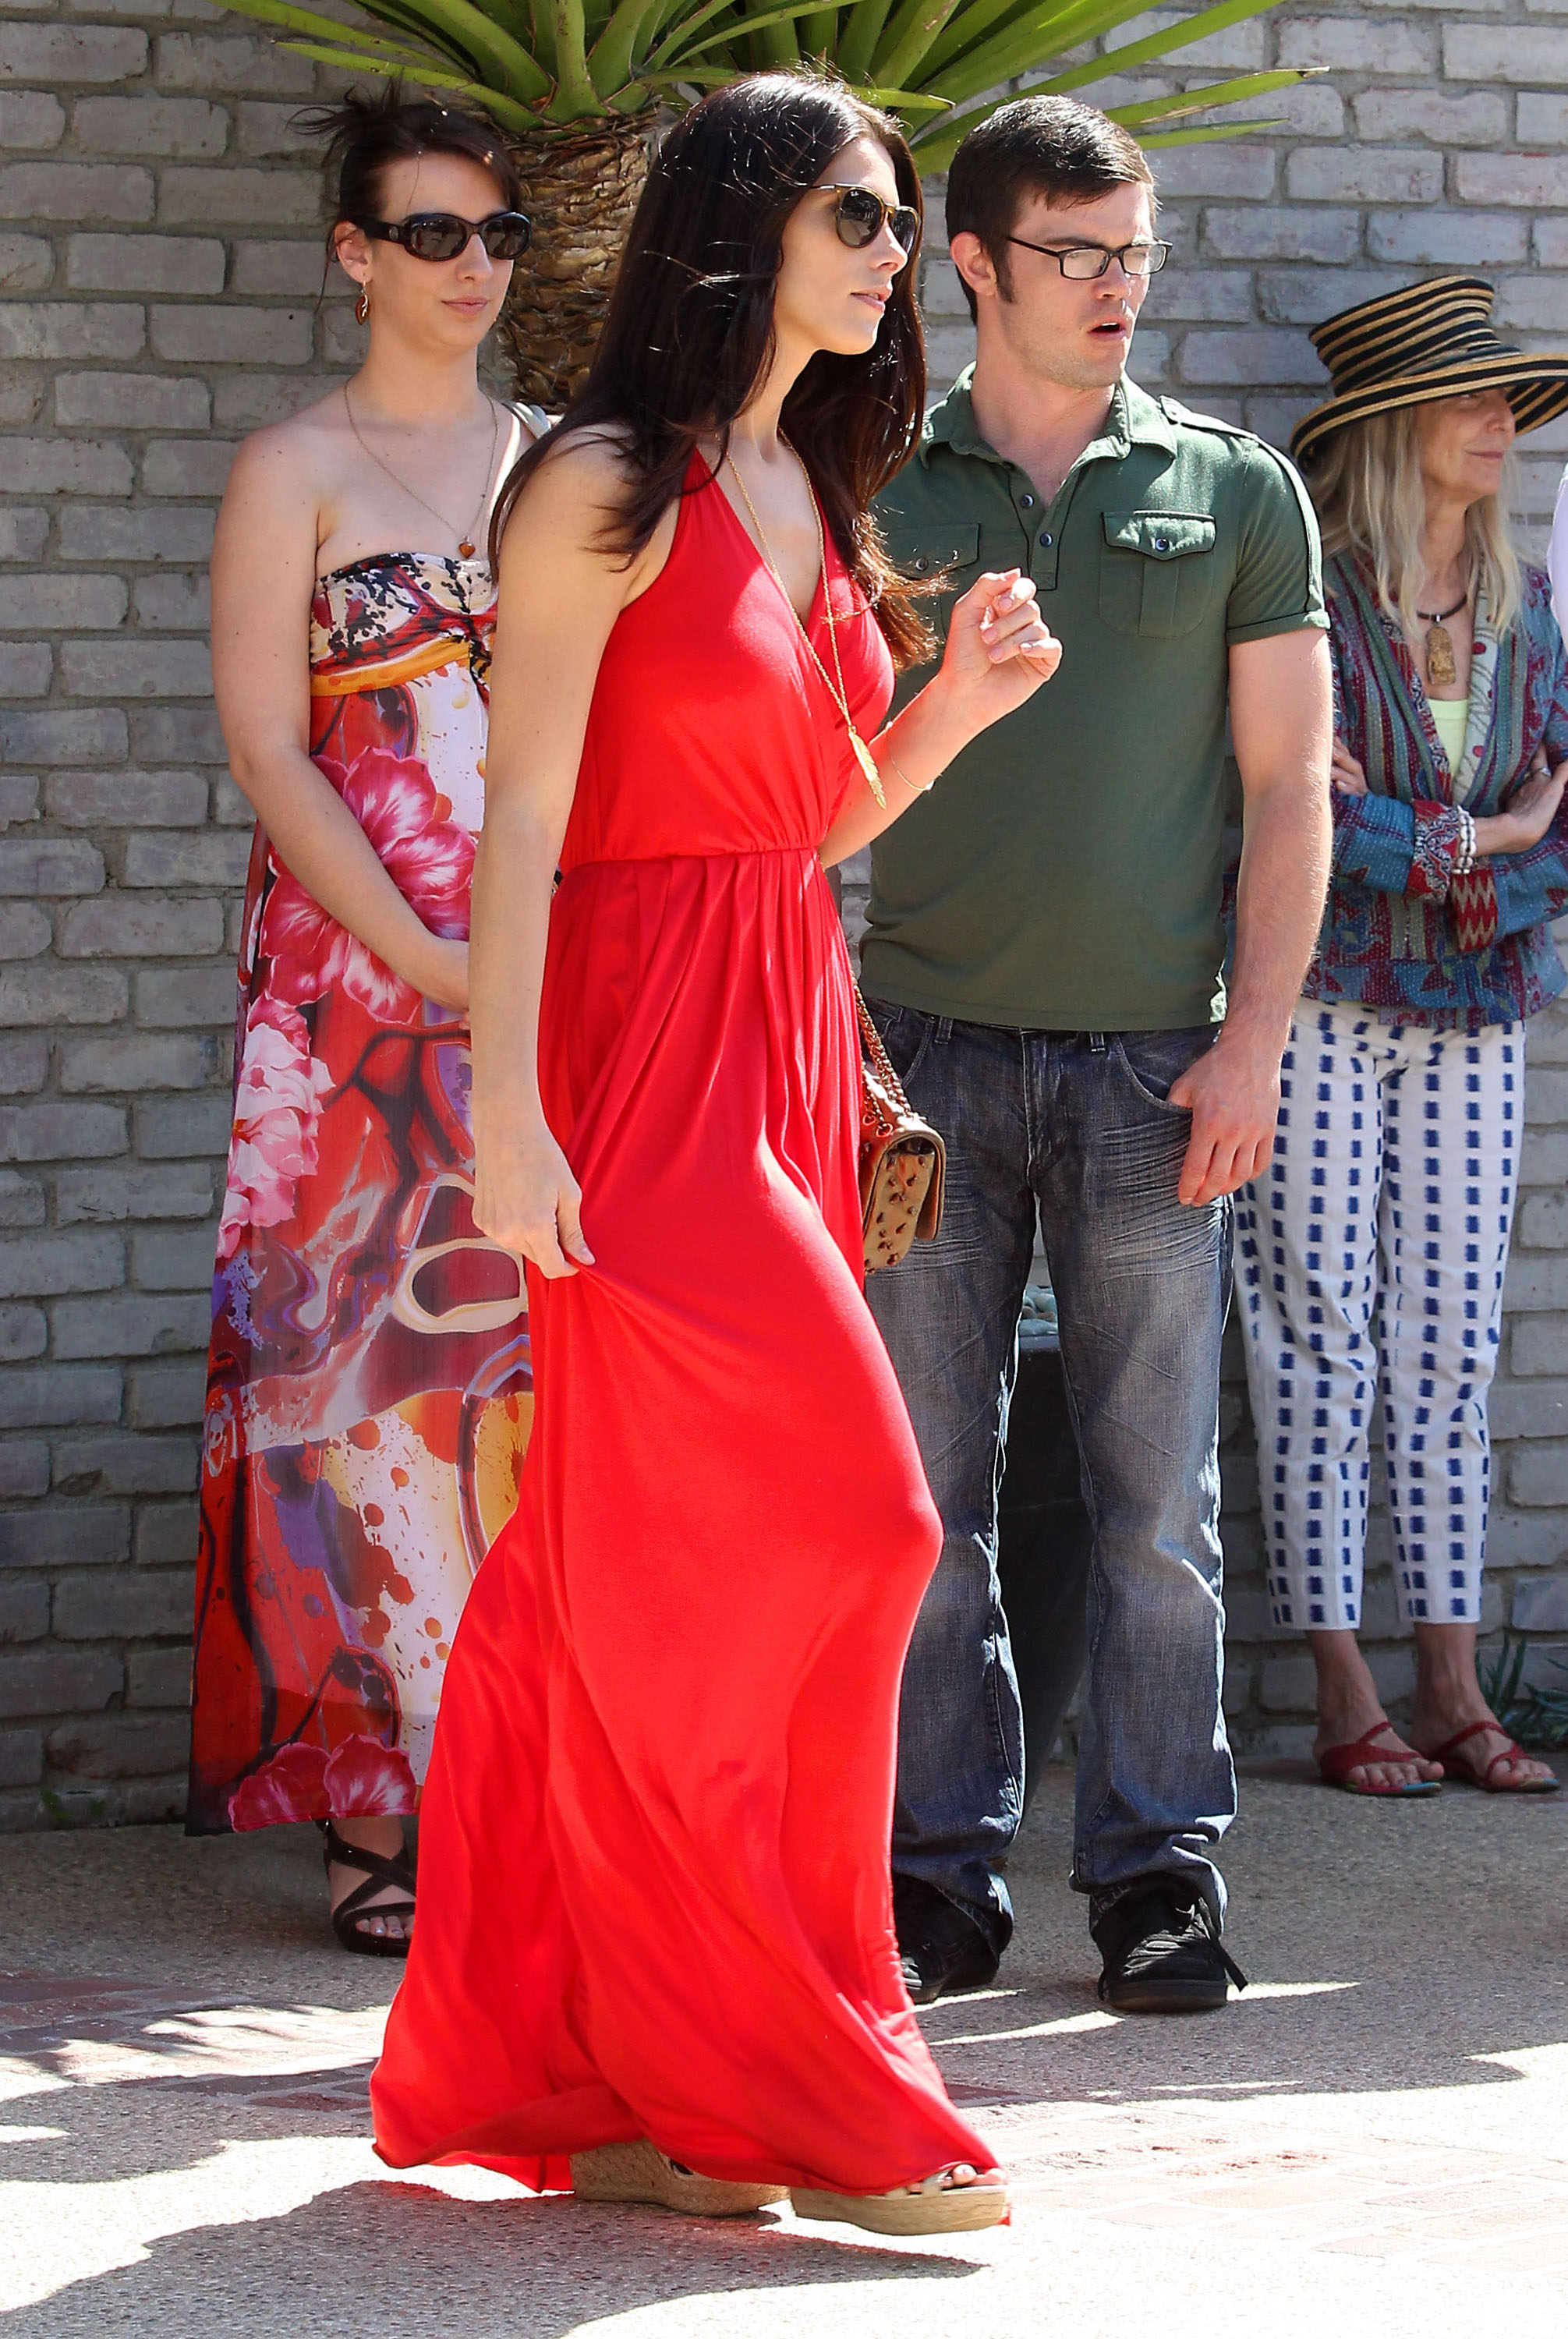 Ashley Greene wore a bright red dress to Joel Silver's Memorial Day party in LA.